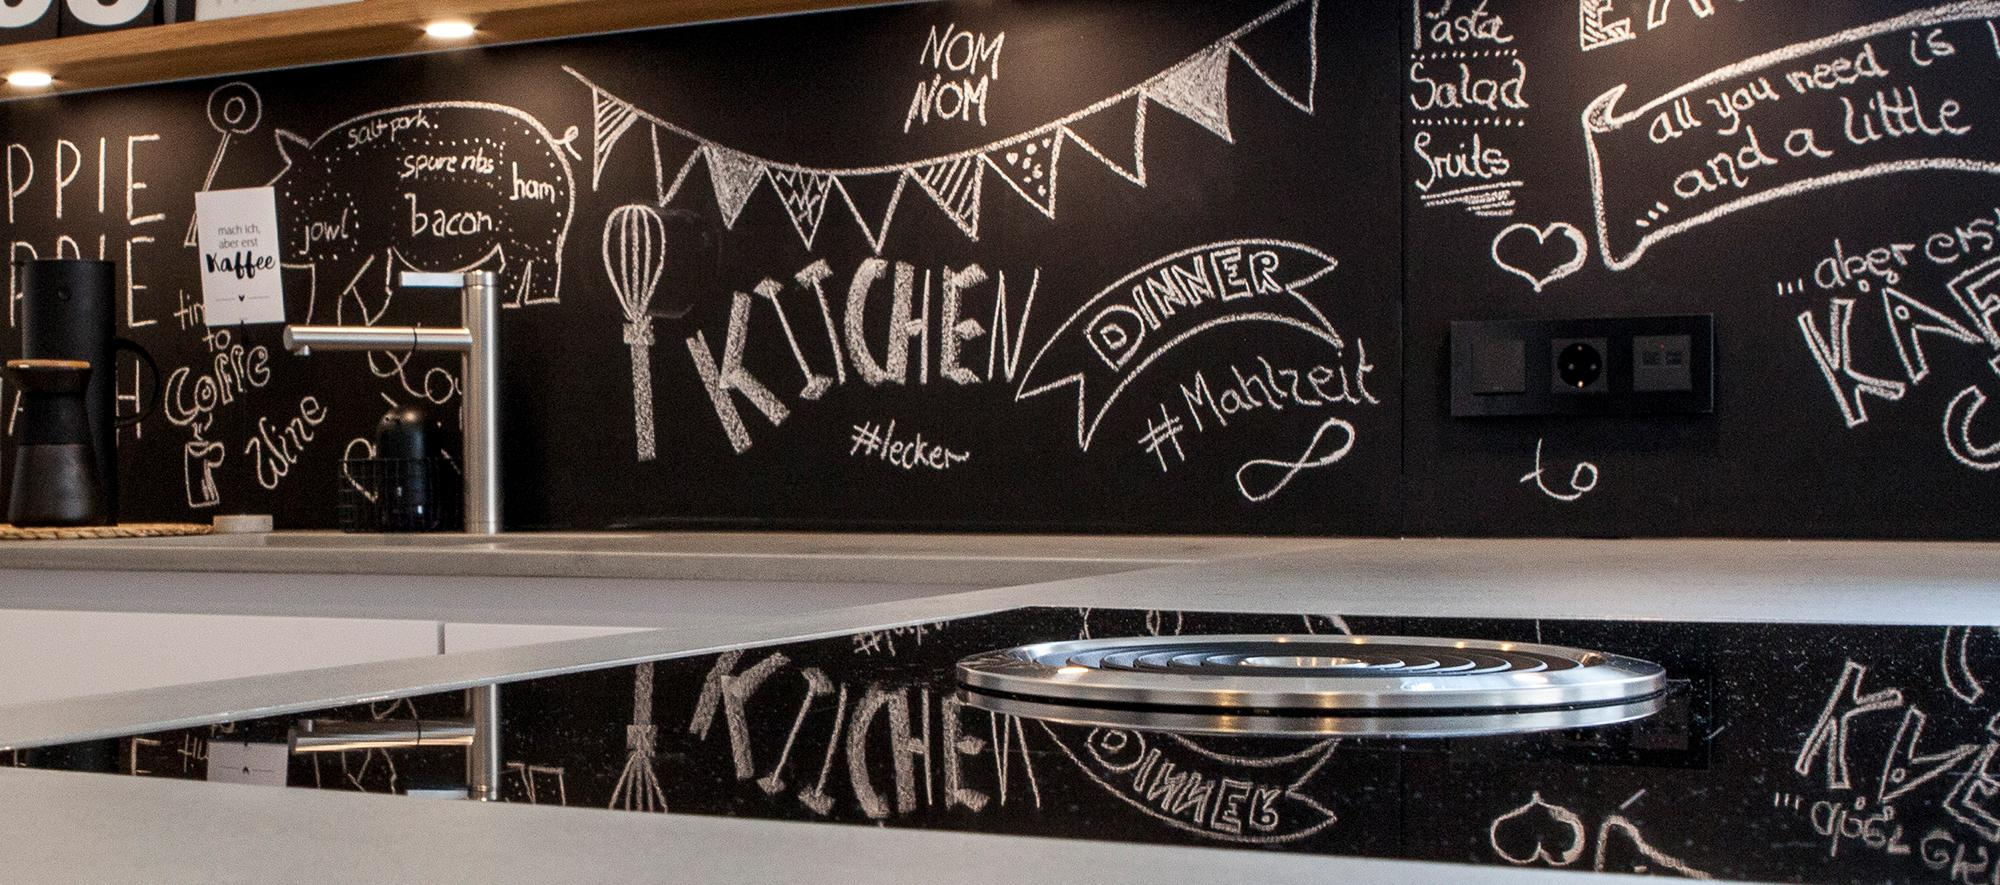 White, Black & Concrete